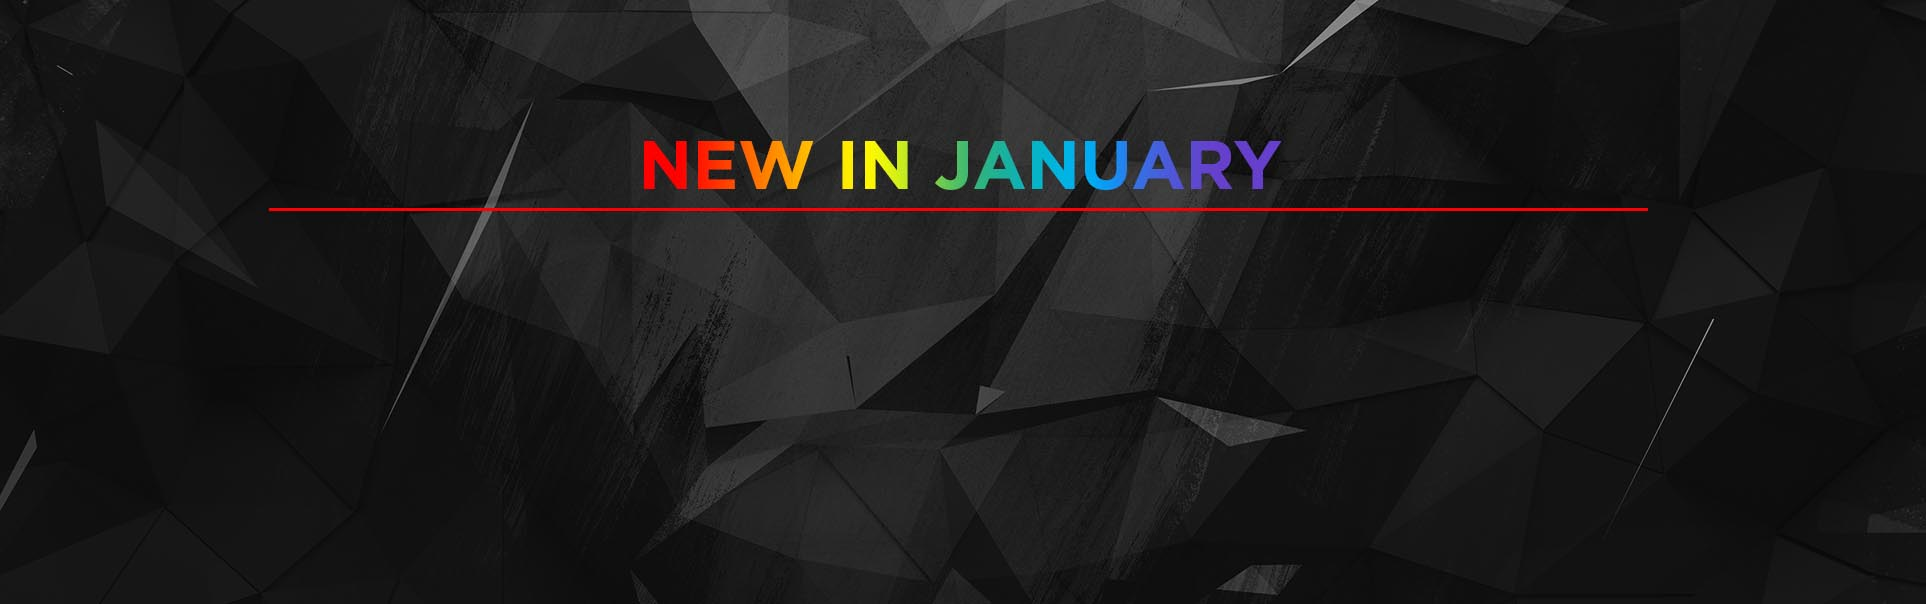 New In January